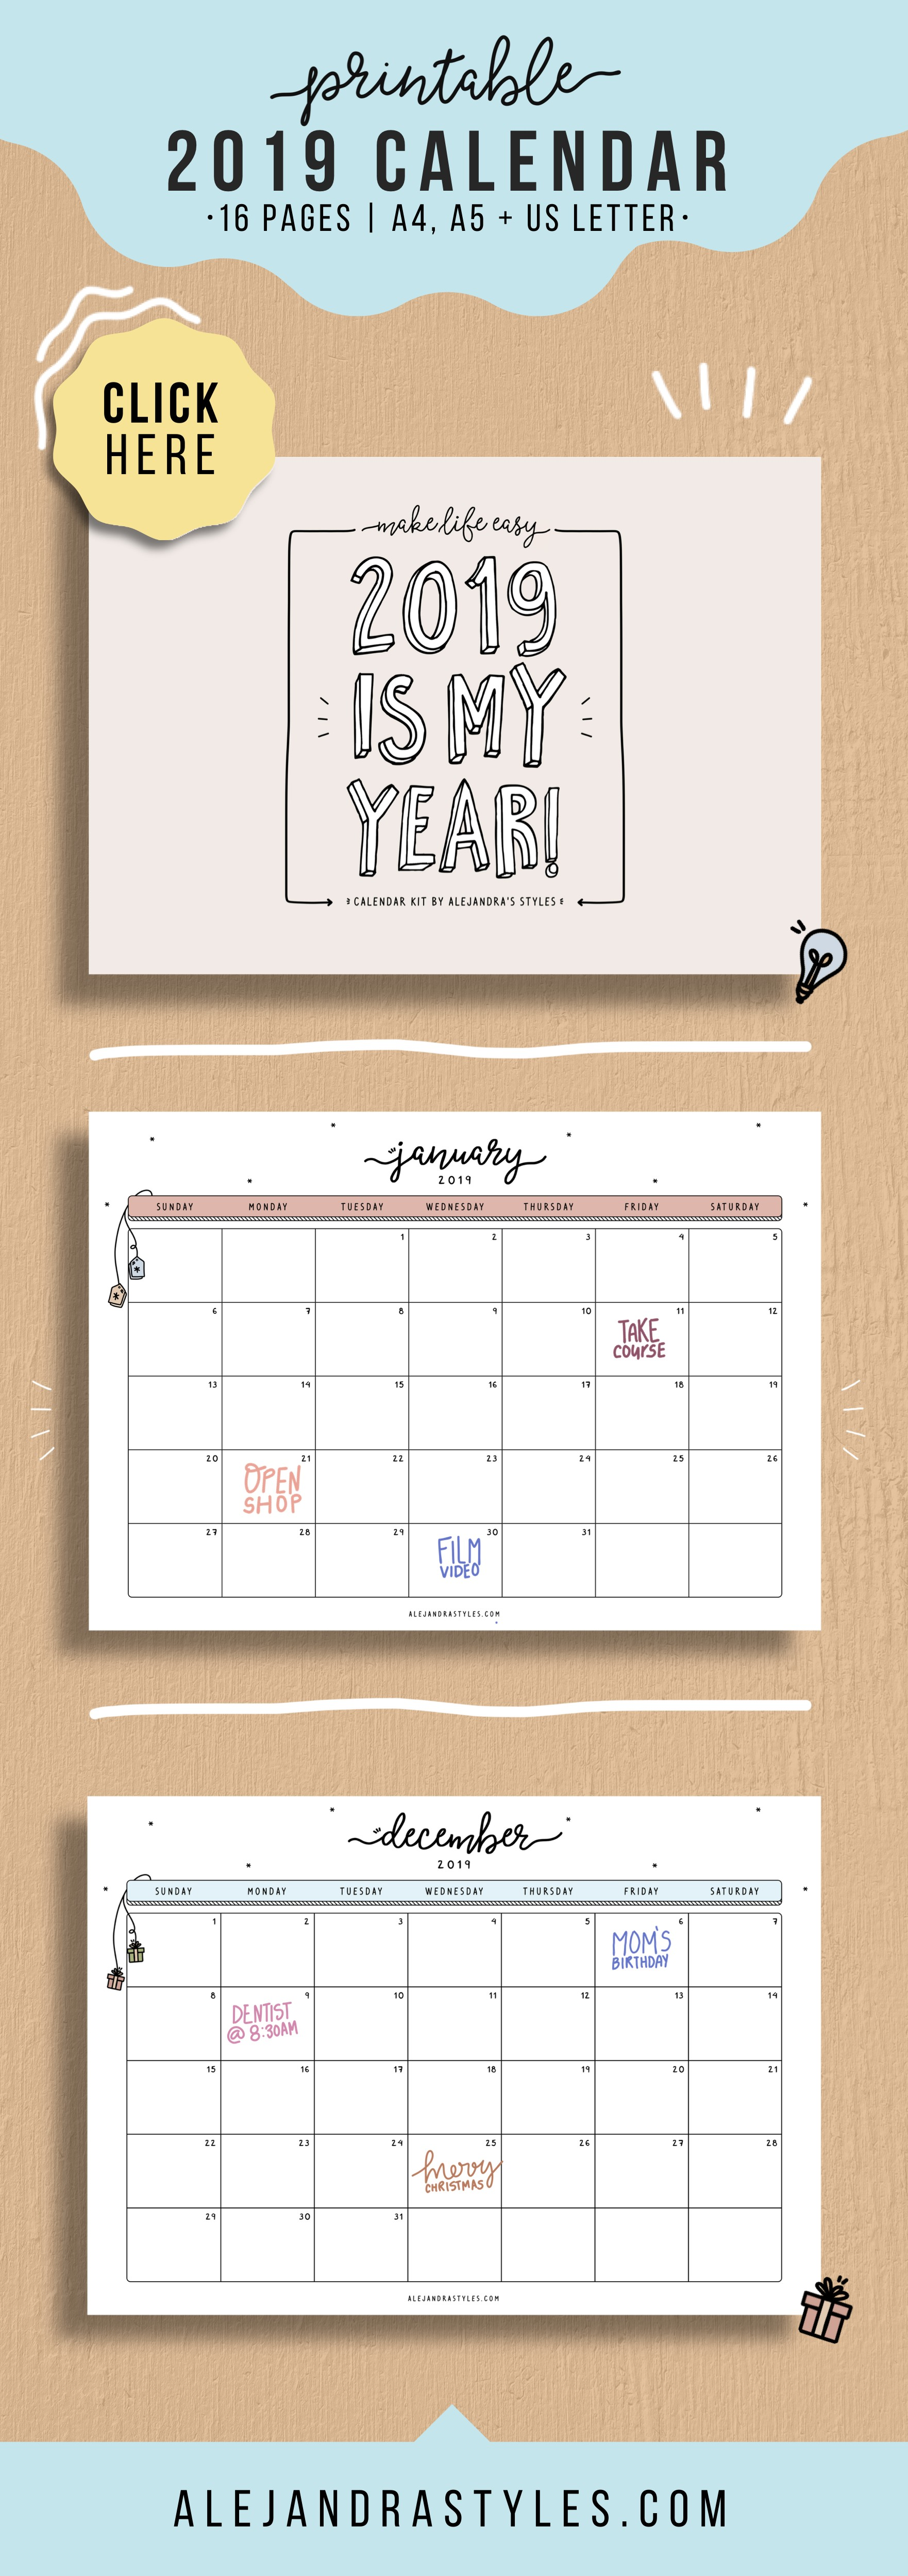 Printable Calendar 2019 This is a fun monthly design to help you excited to